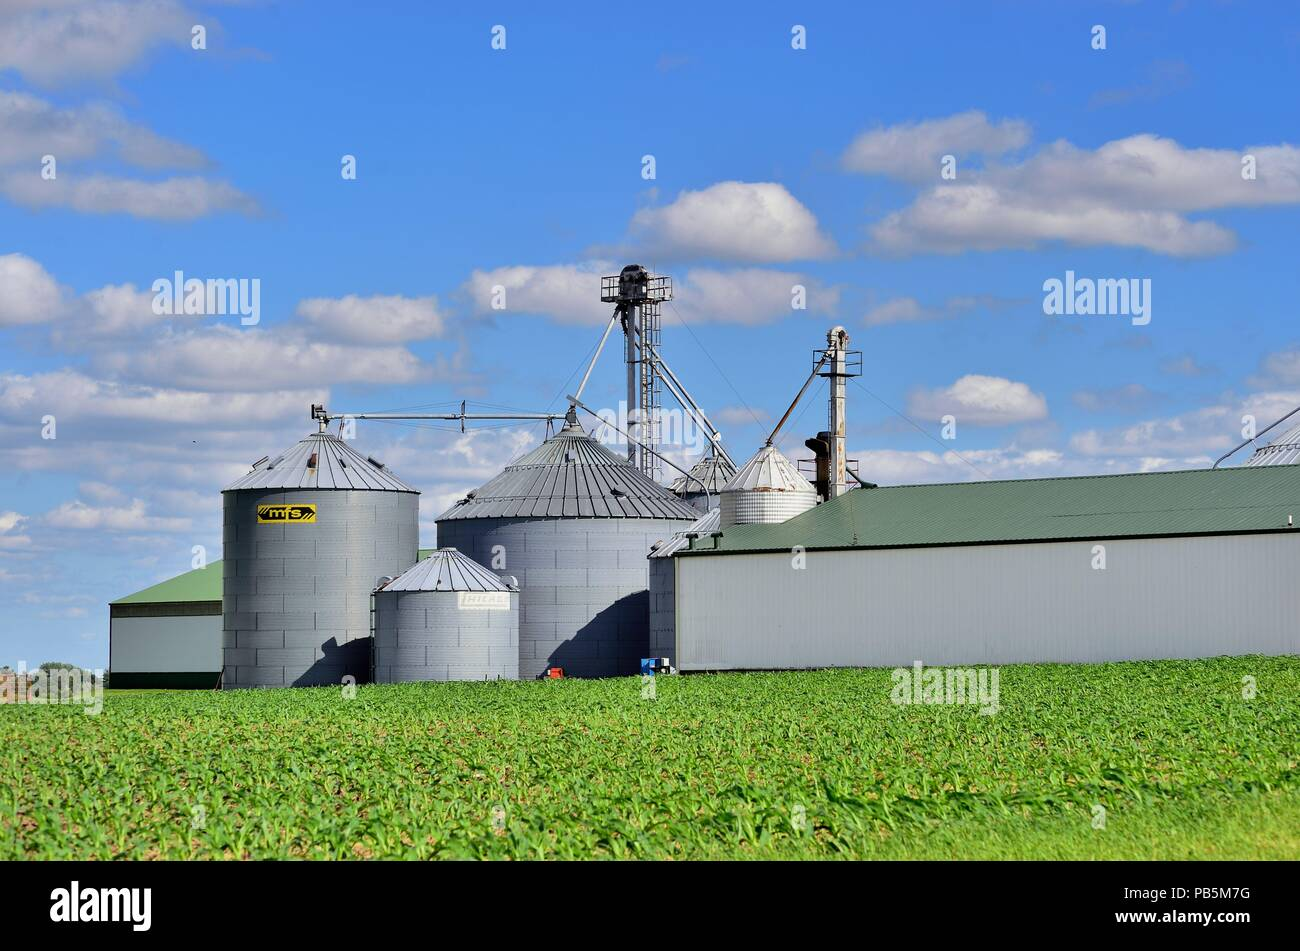 Burlington, Illinois, USA. Storage Tanks And Silos At A Cooperative Rest  Beyond Fields Of Crops Among Agricultural Land In Northeastern Illinois.